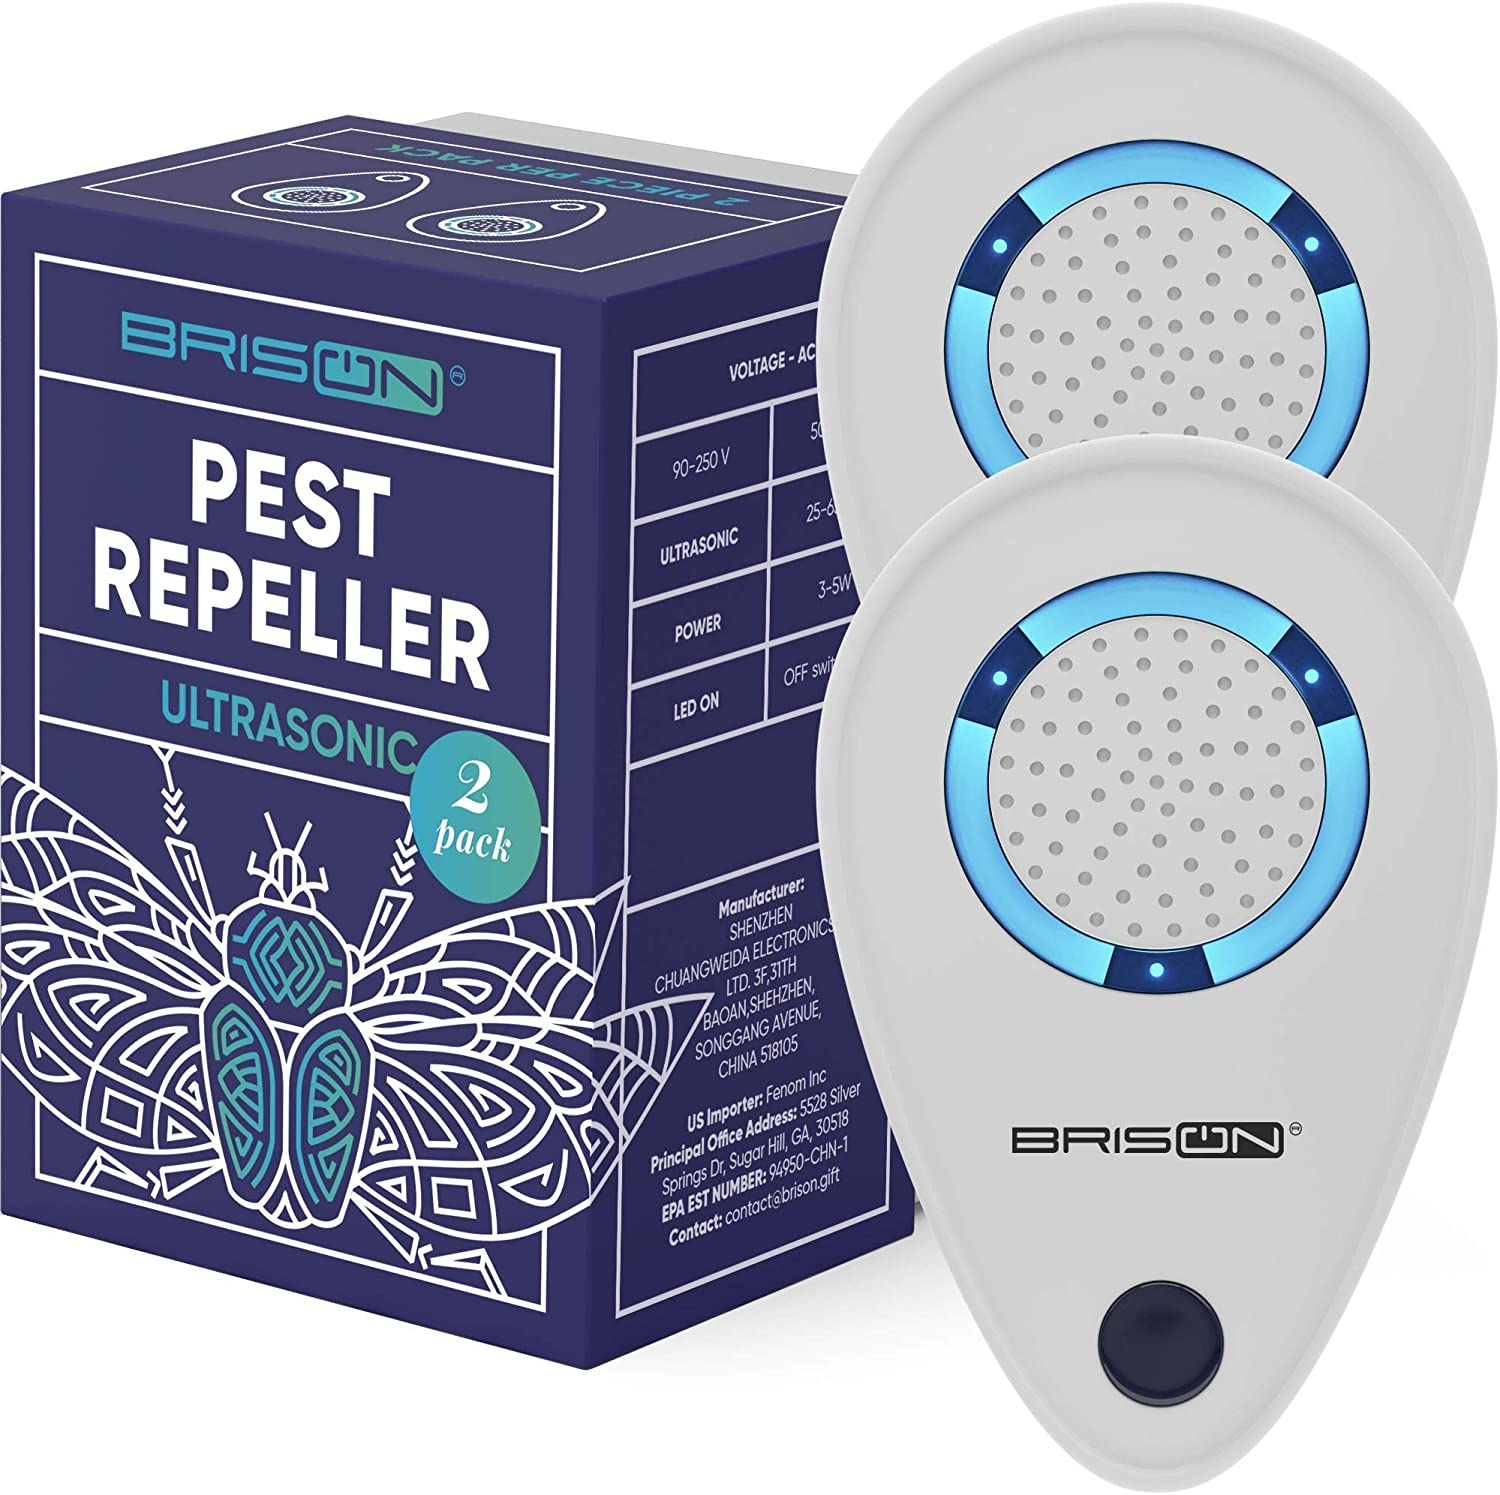 BRISON Ultrasonic Pest Reject Repeller - Plug in Electronic Non-Toxic Device - Electromagnetic and Ultrasound Control - Repellent for Mice Rats Bed Bugs Spiders Rodents Insects - Indoor